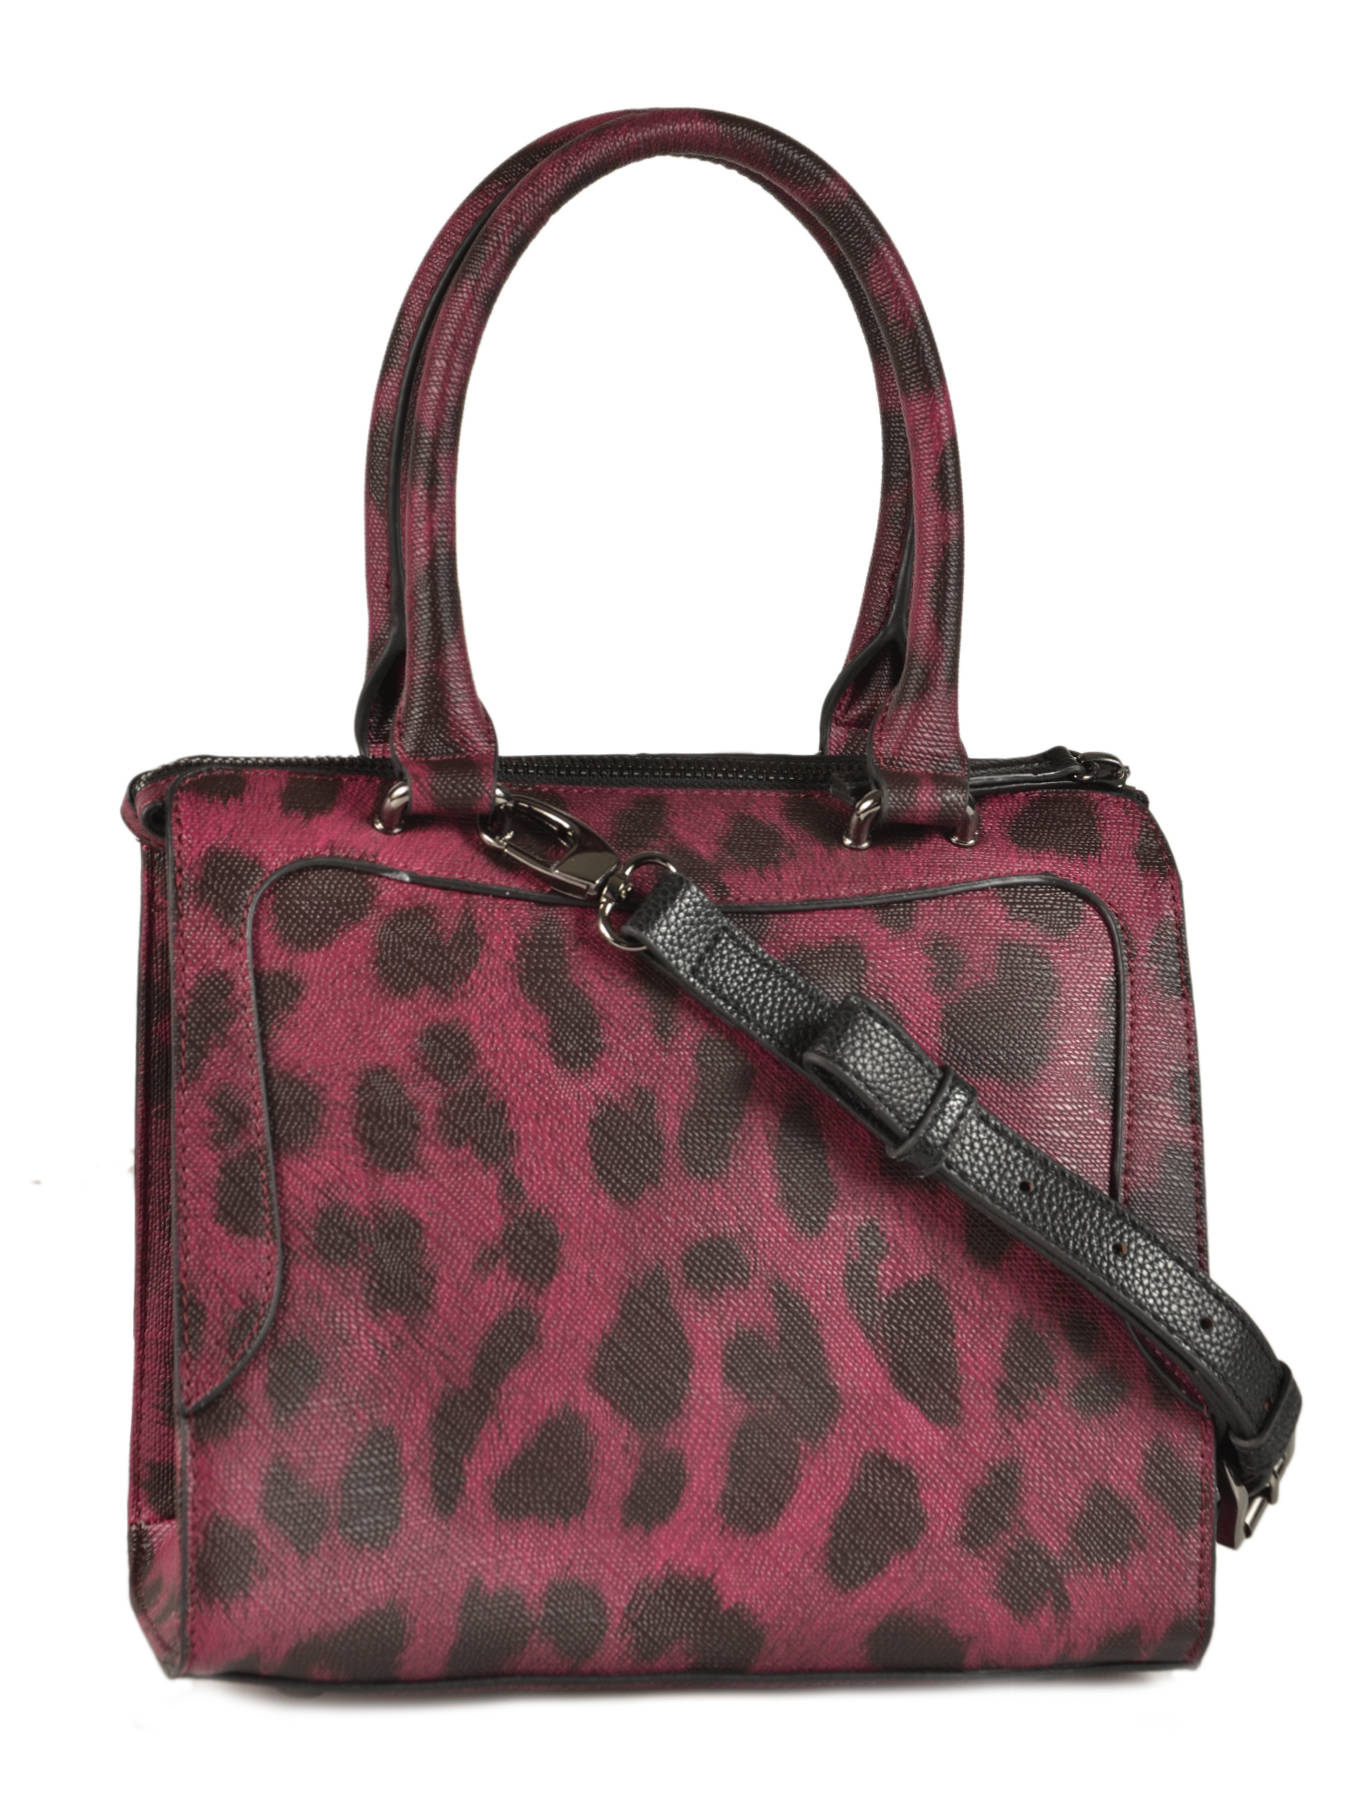 ... Top Handle Paul s boutique Red allcroft HUNALL other view 3 ... cd72f117fffc4